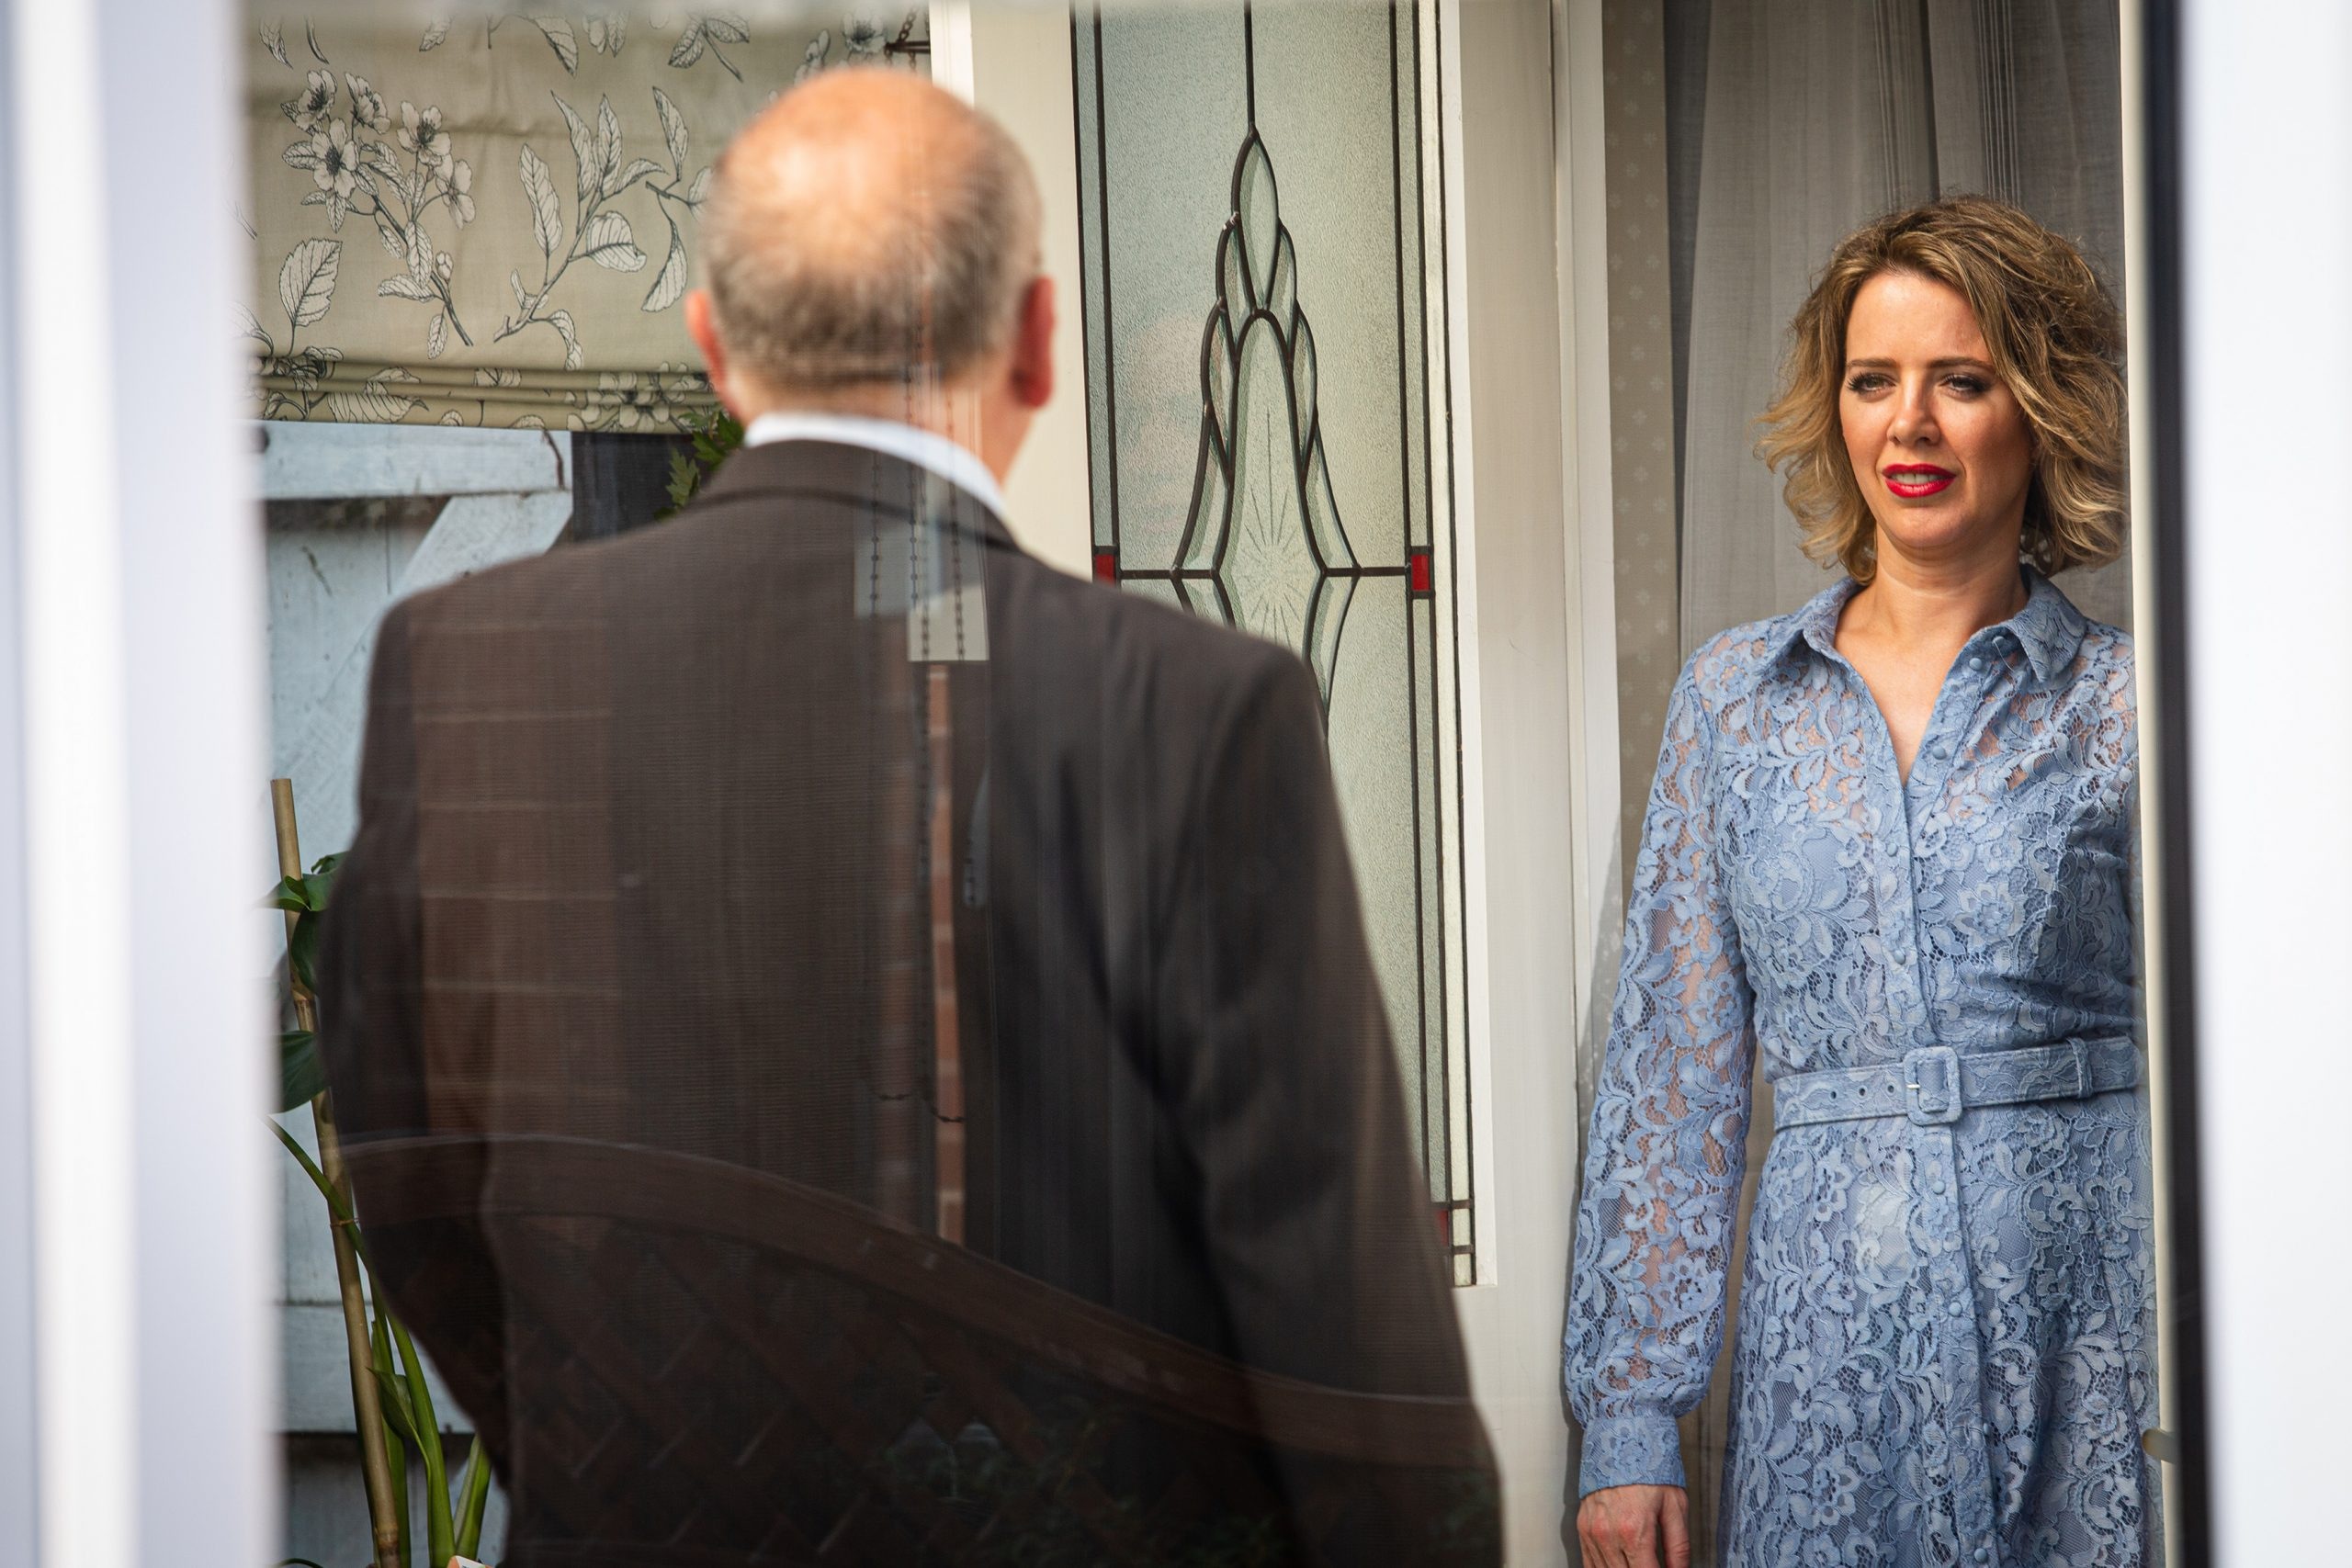 Abi Franklin has sinister plans for Geoff…